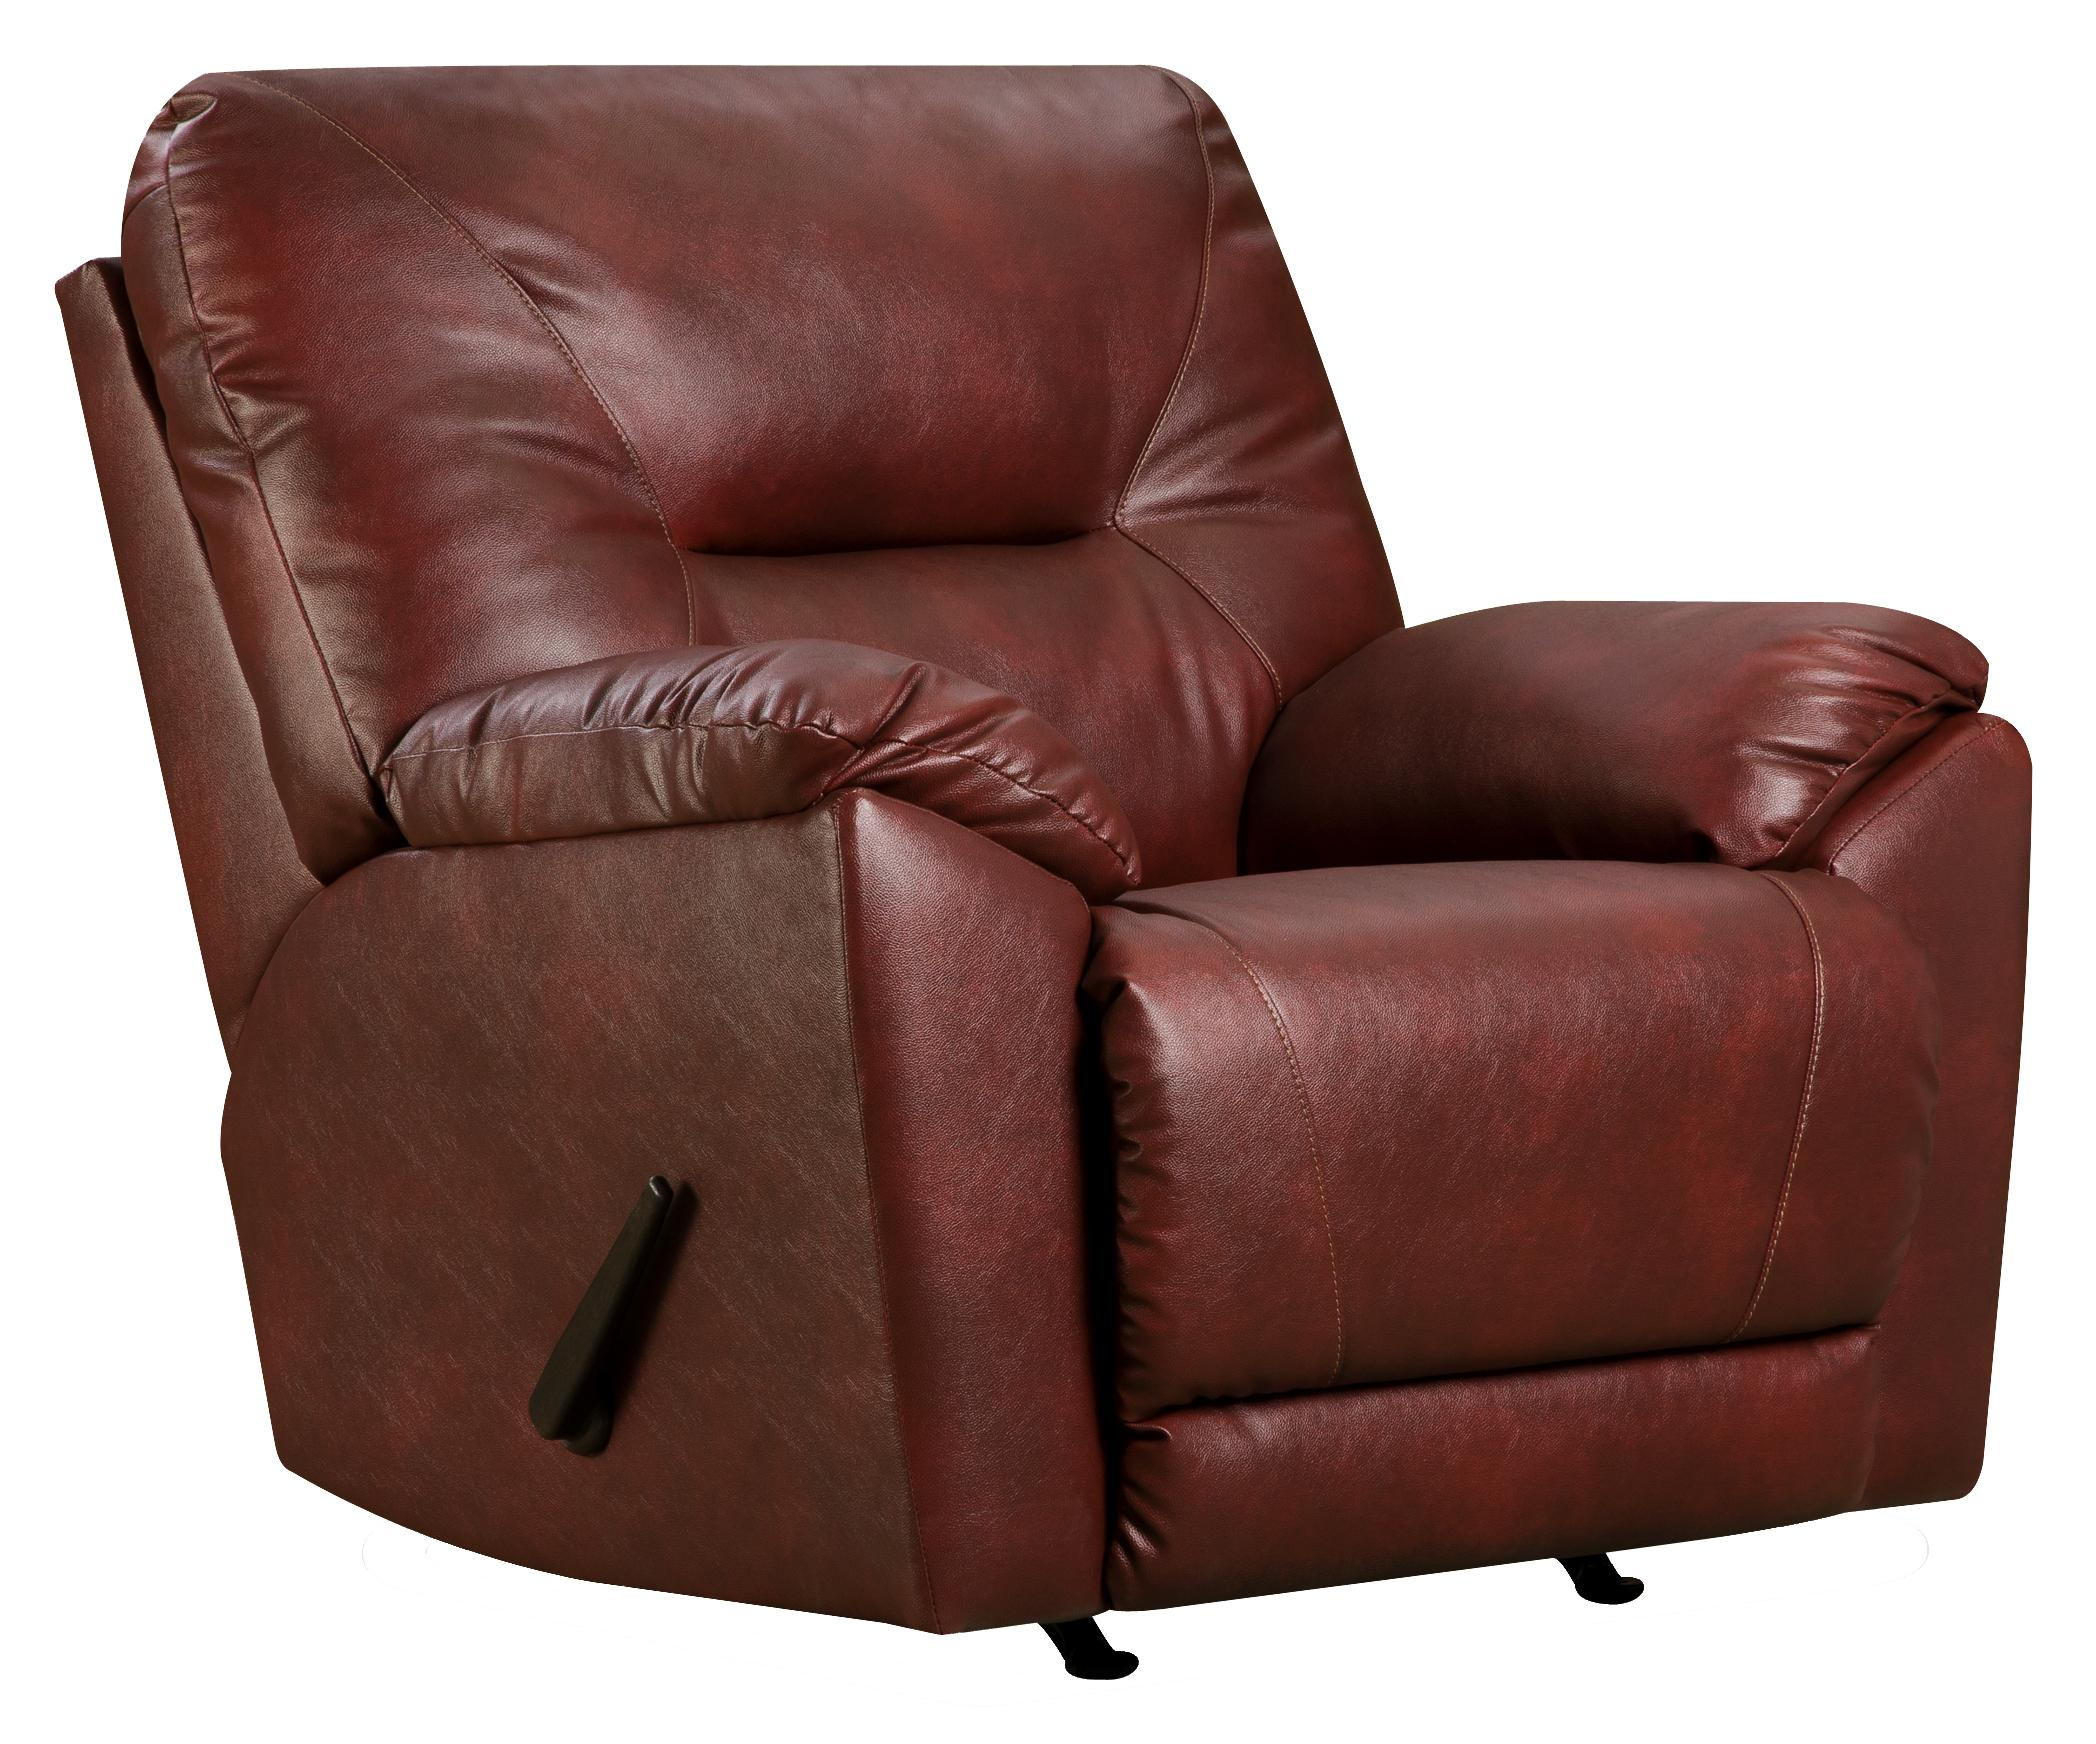 Southern Motion Dynamo Wall Hugger Recliner For Family